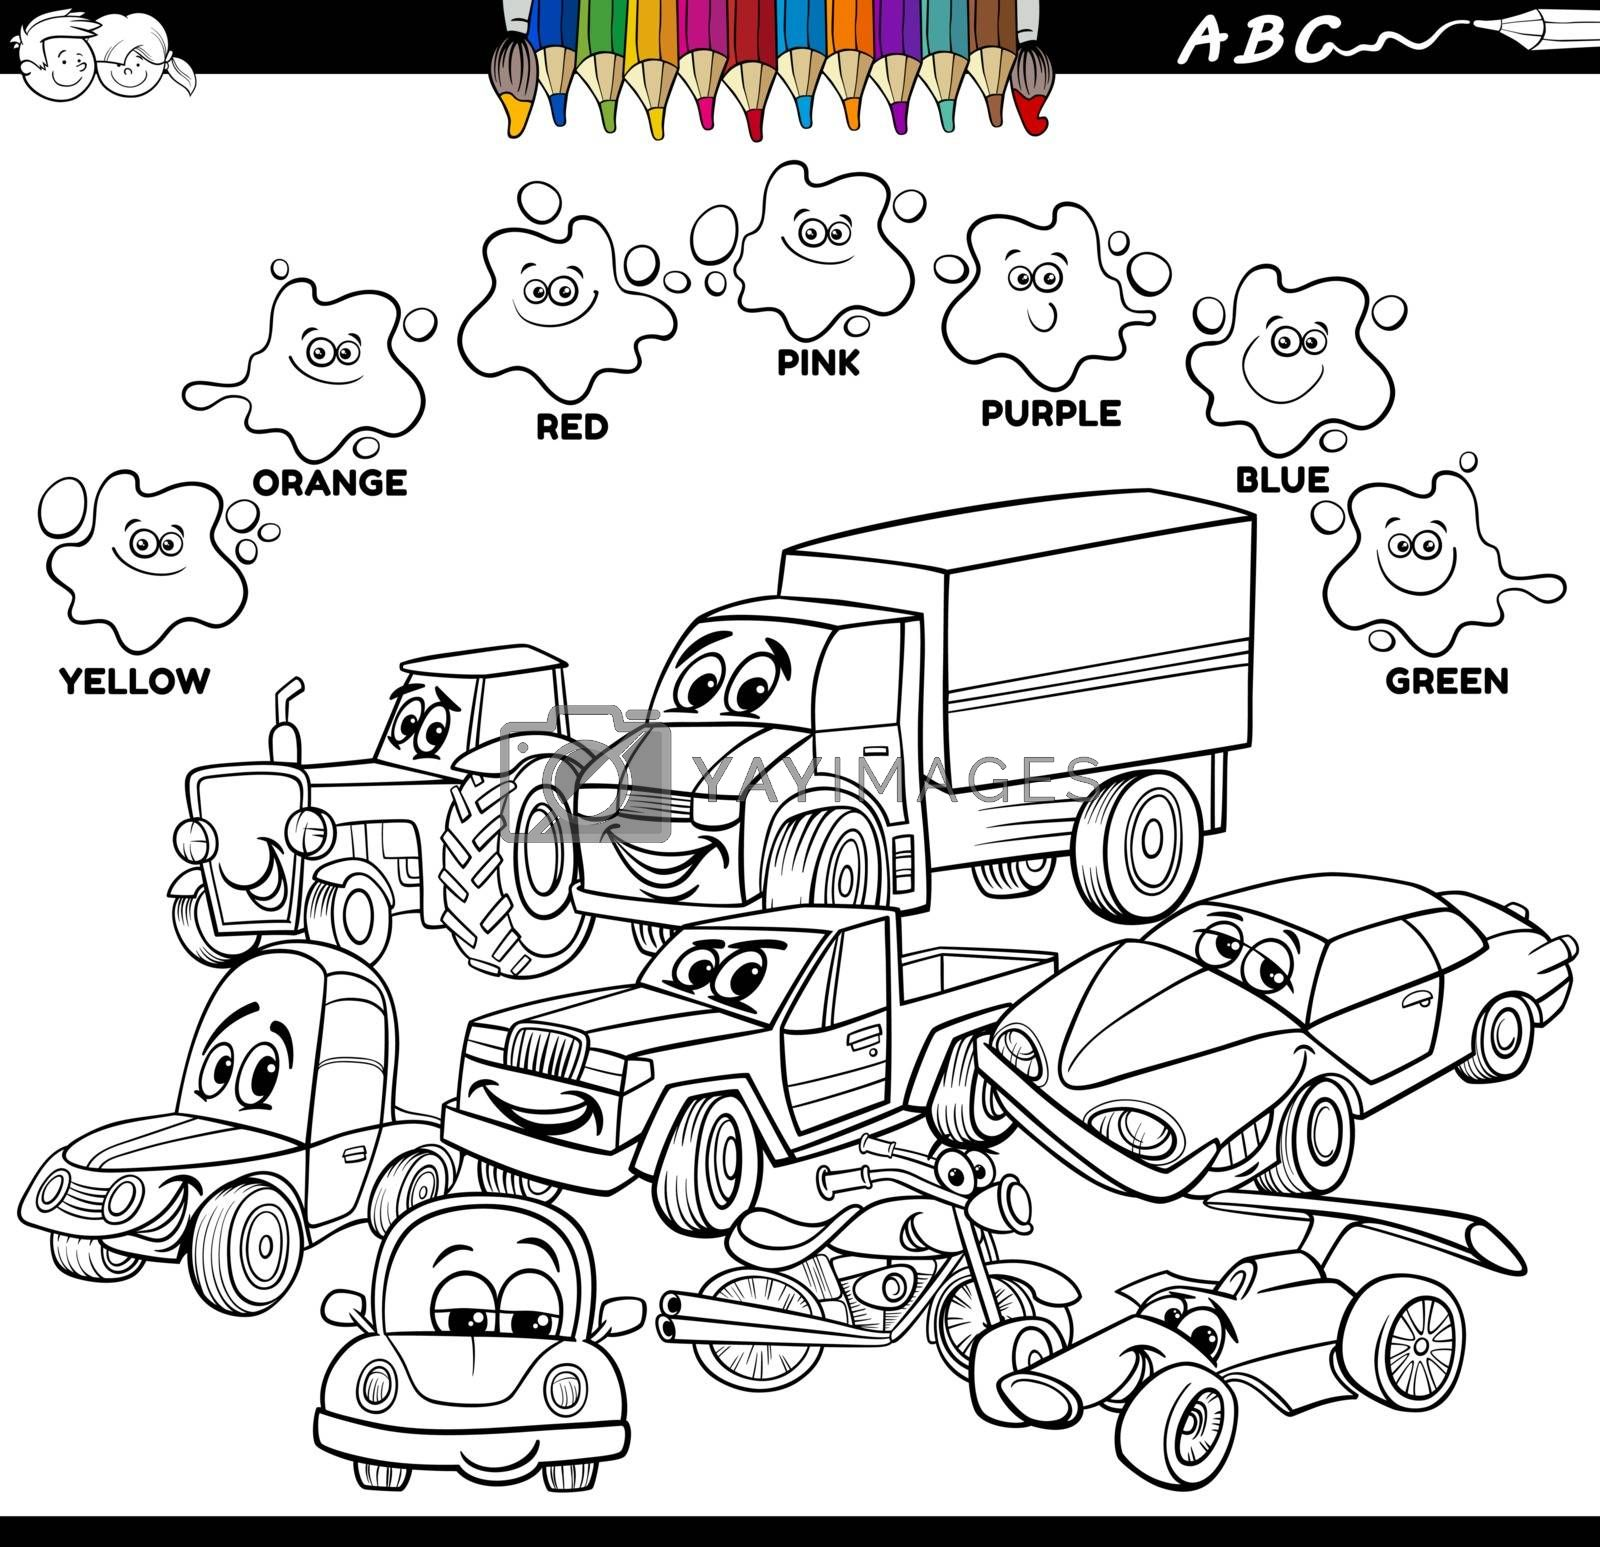 Black and White Educational Cartoon Illustration of Basic Colors with Cars and Transport Characters Group Coloring Book Page